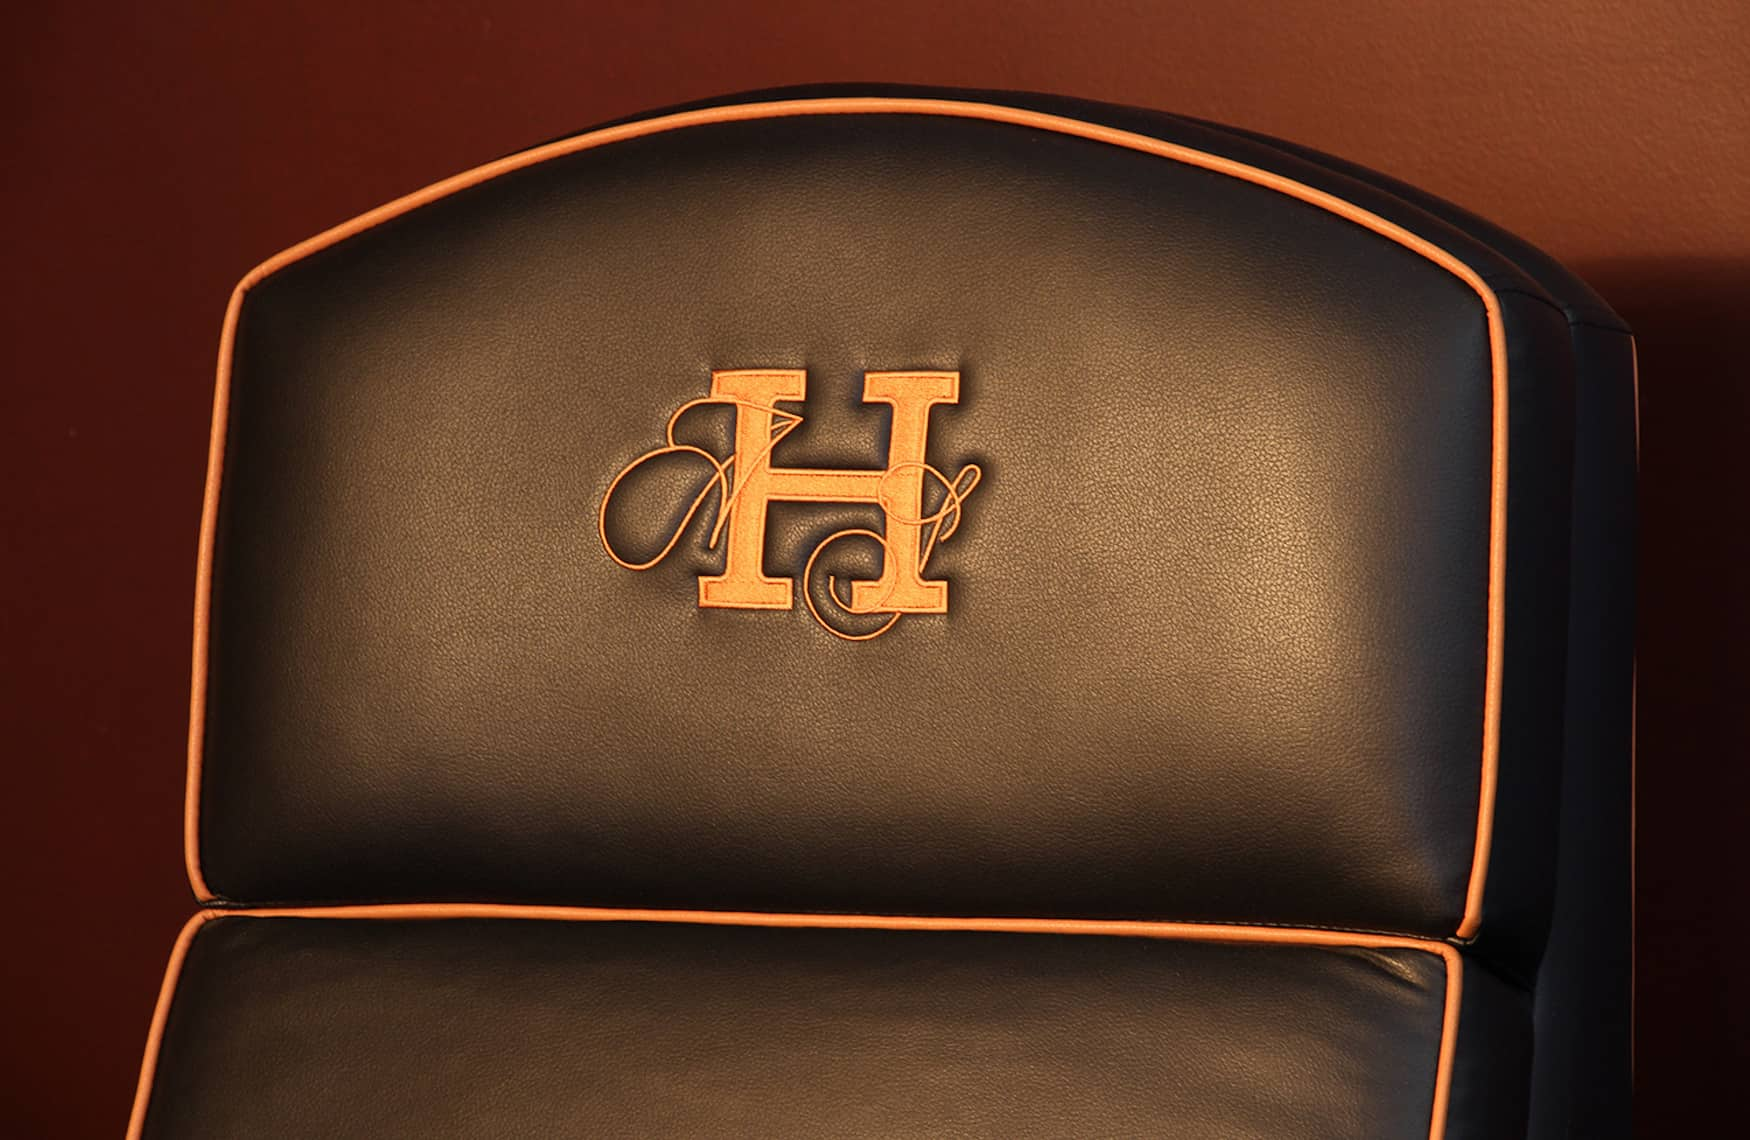 Home theatre seating Elite HTS logo image